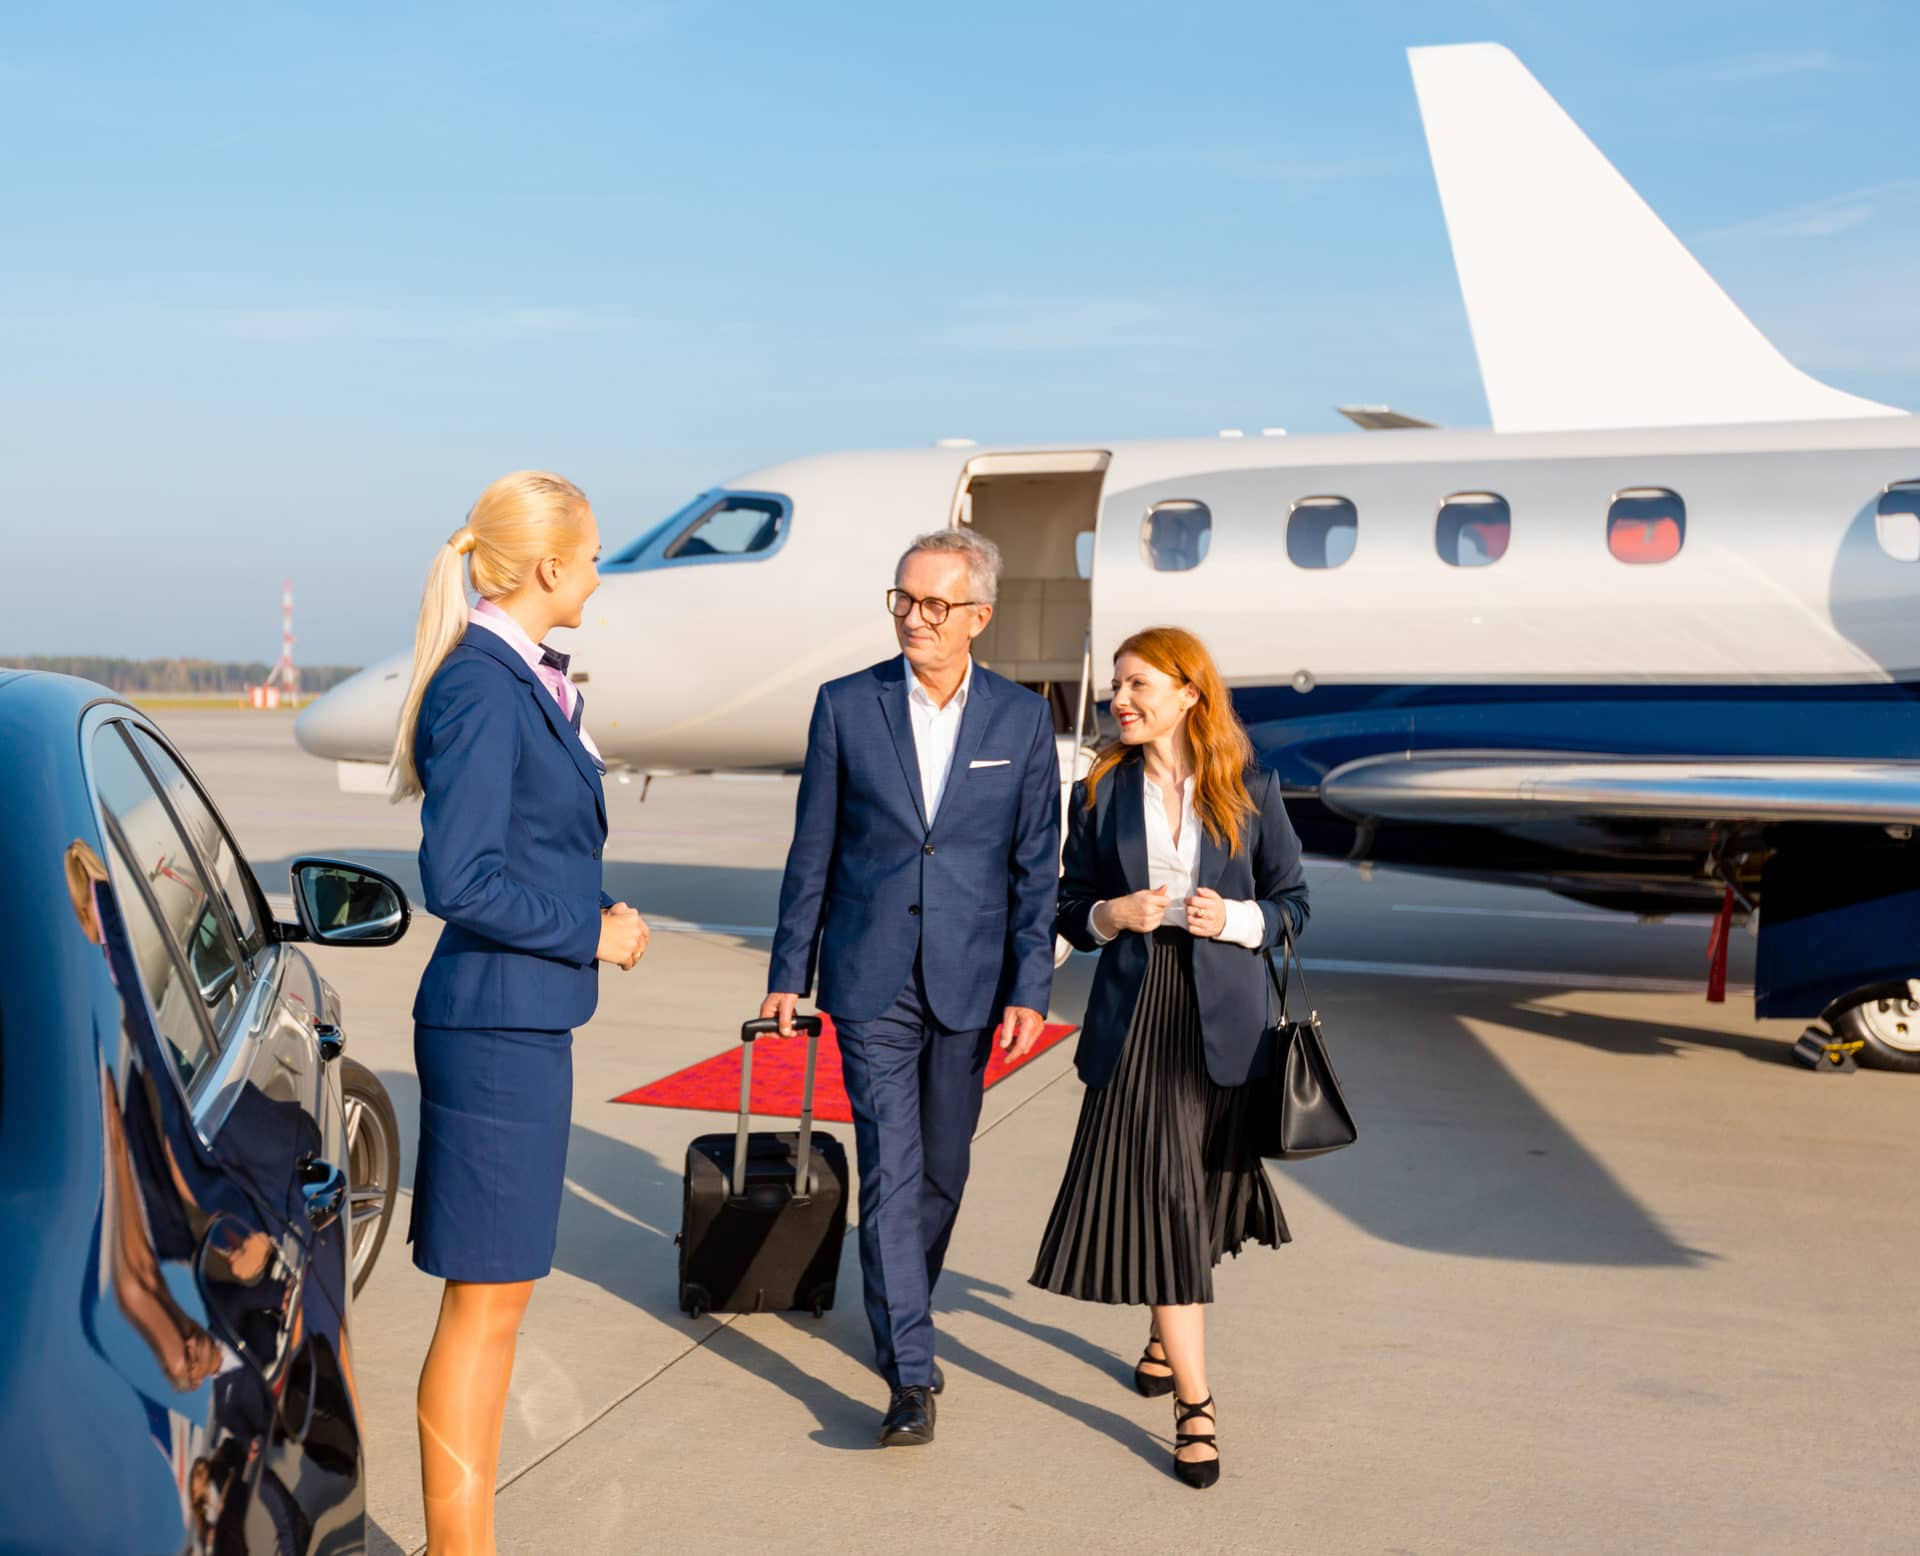 Business people in front of private jet at the airport